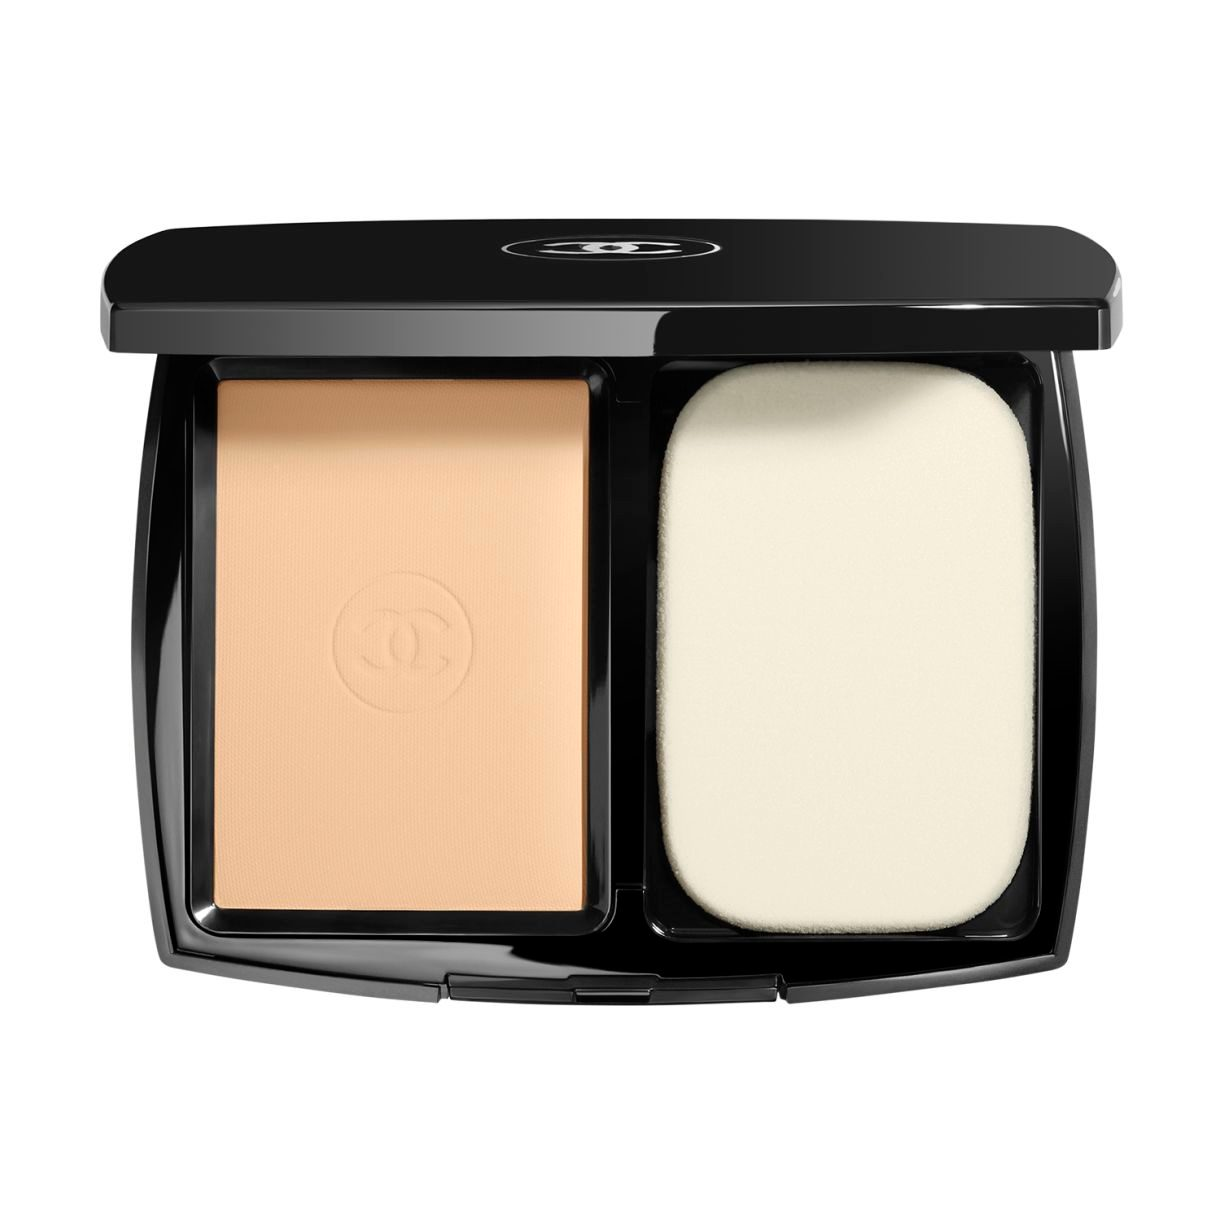 LE TEINT ULTRA TENUE ULTRAWEAR FLAWLESS COMPACT FOUNDATION SPF 15 10 - BEIGE